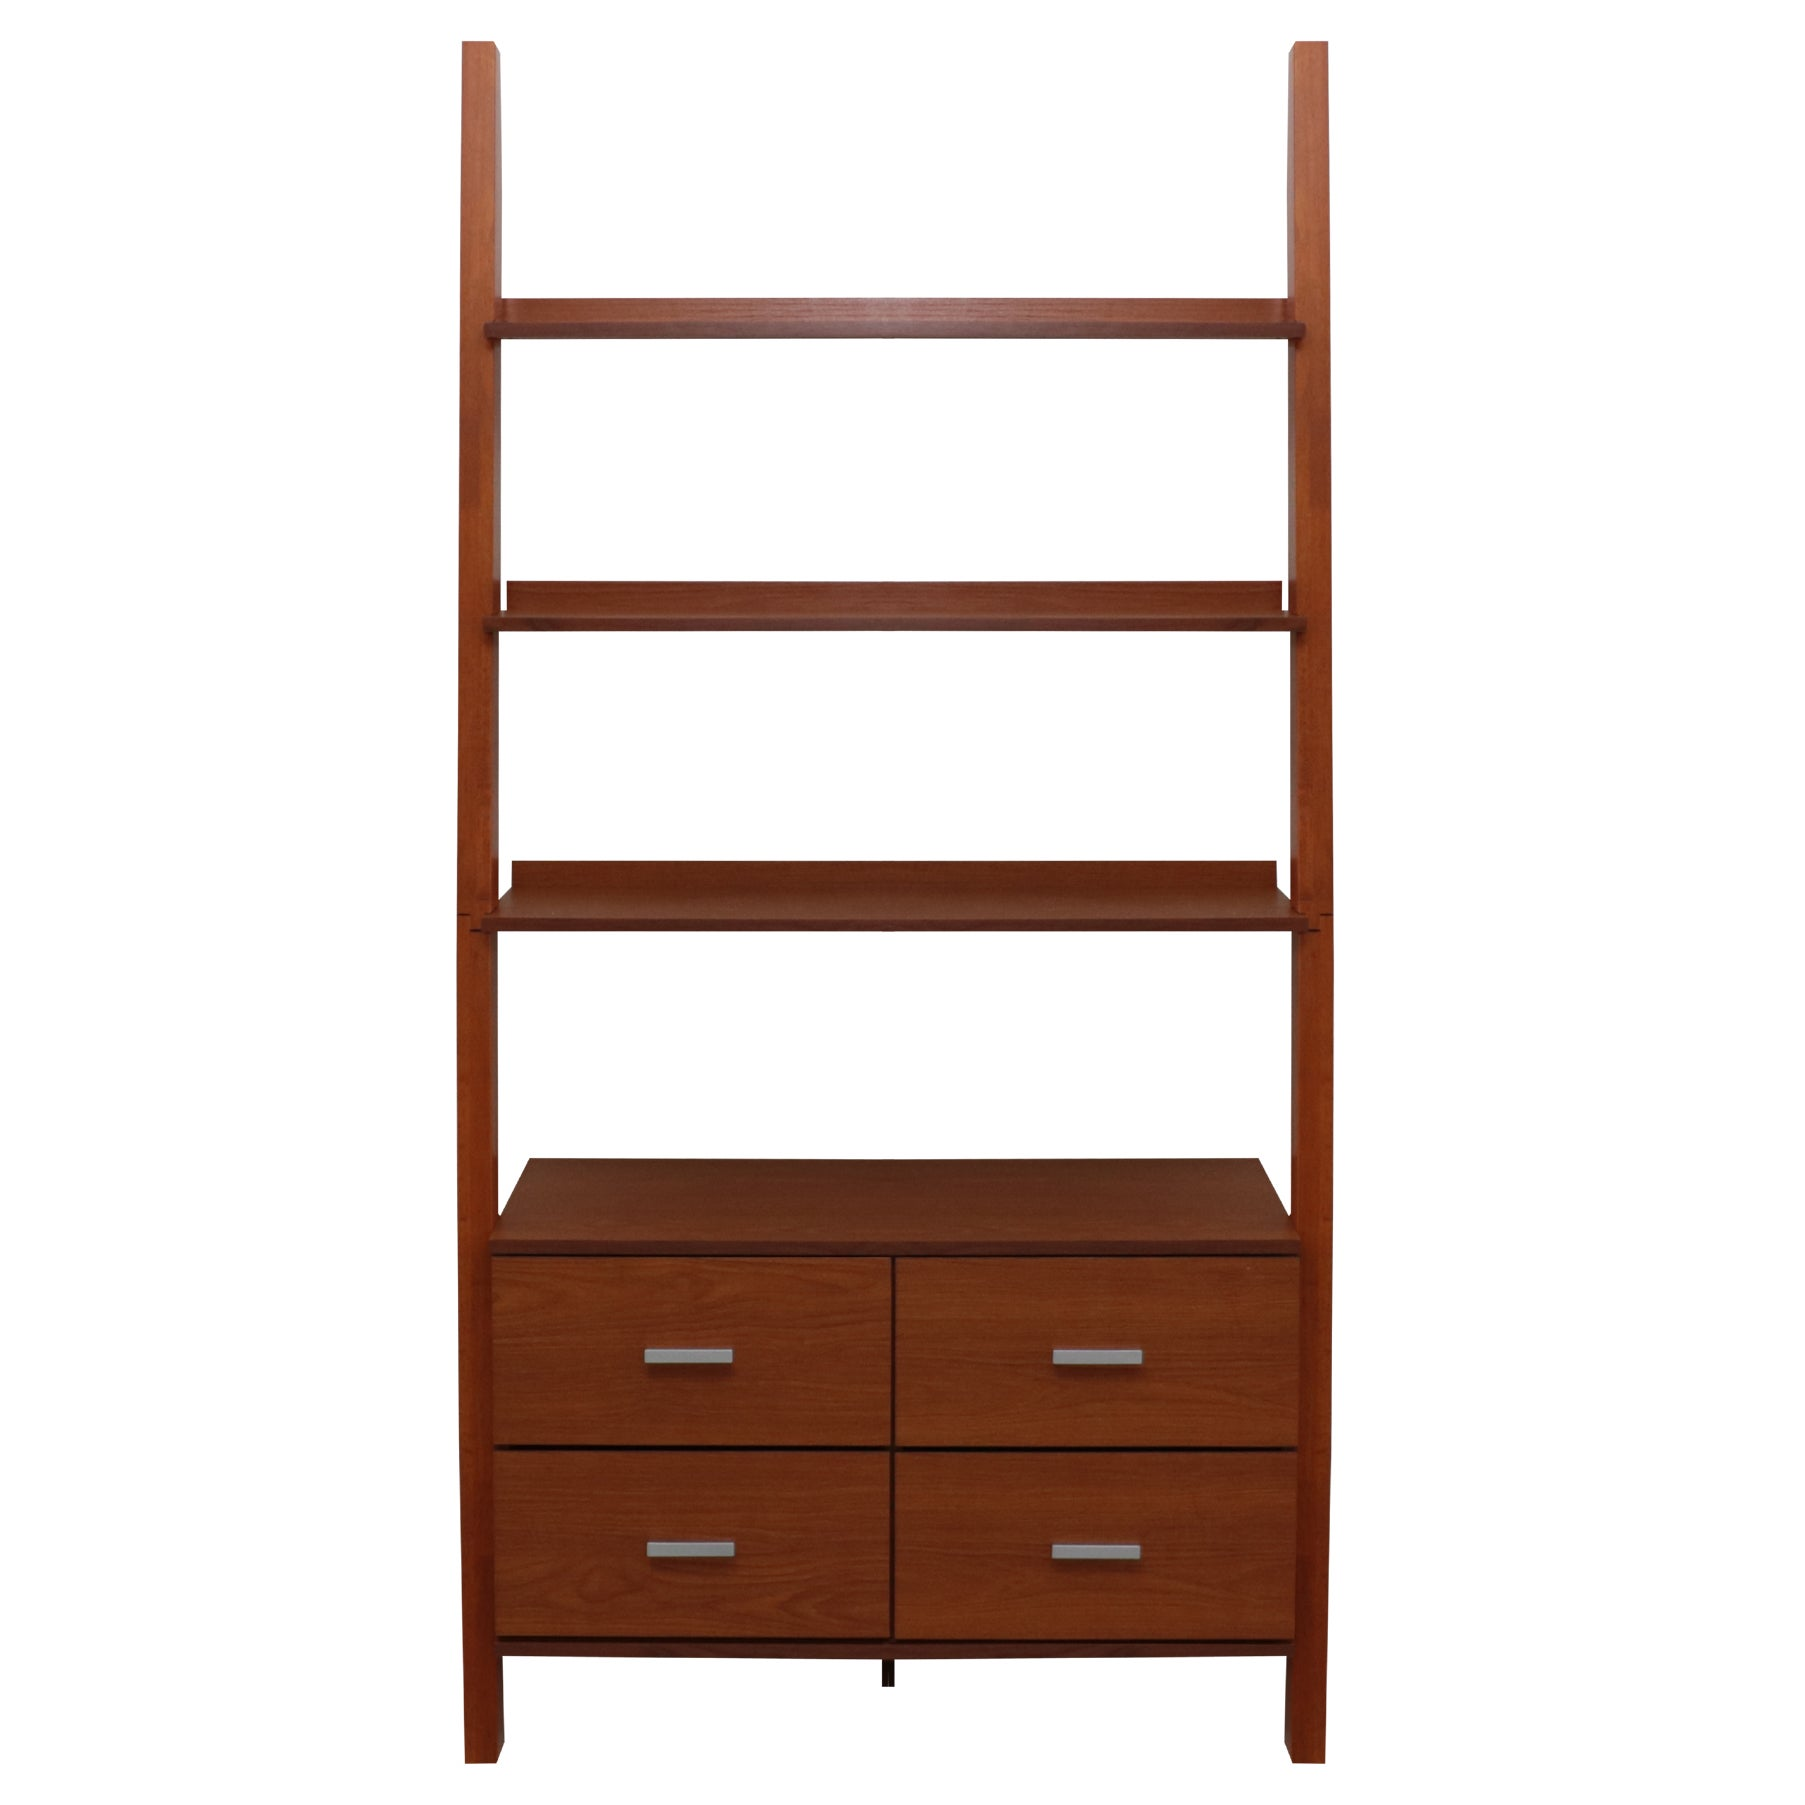 Shop oak finished leaning ladder bookshelf with drawers free shipping today overstock com 14295545